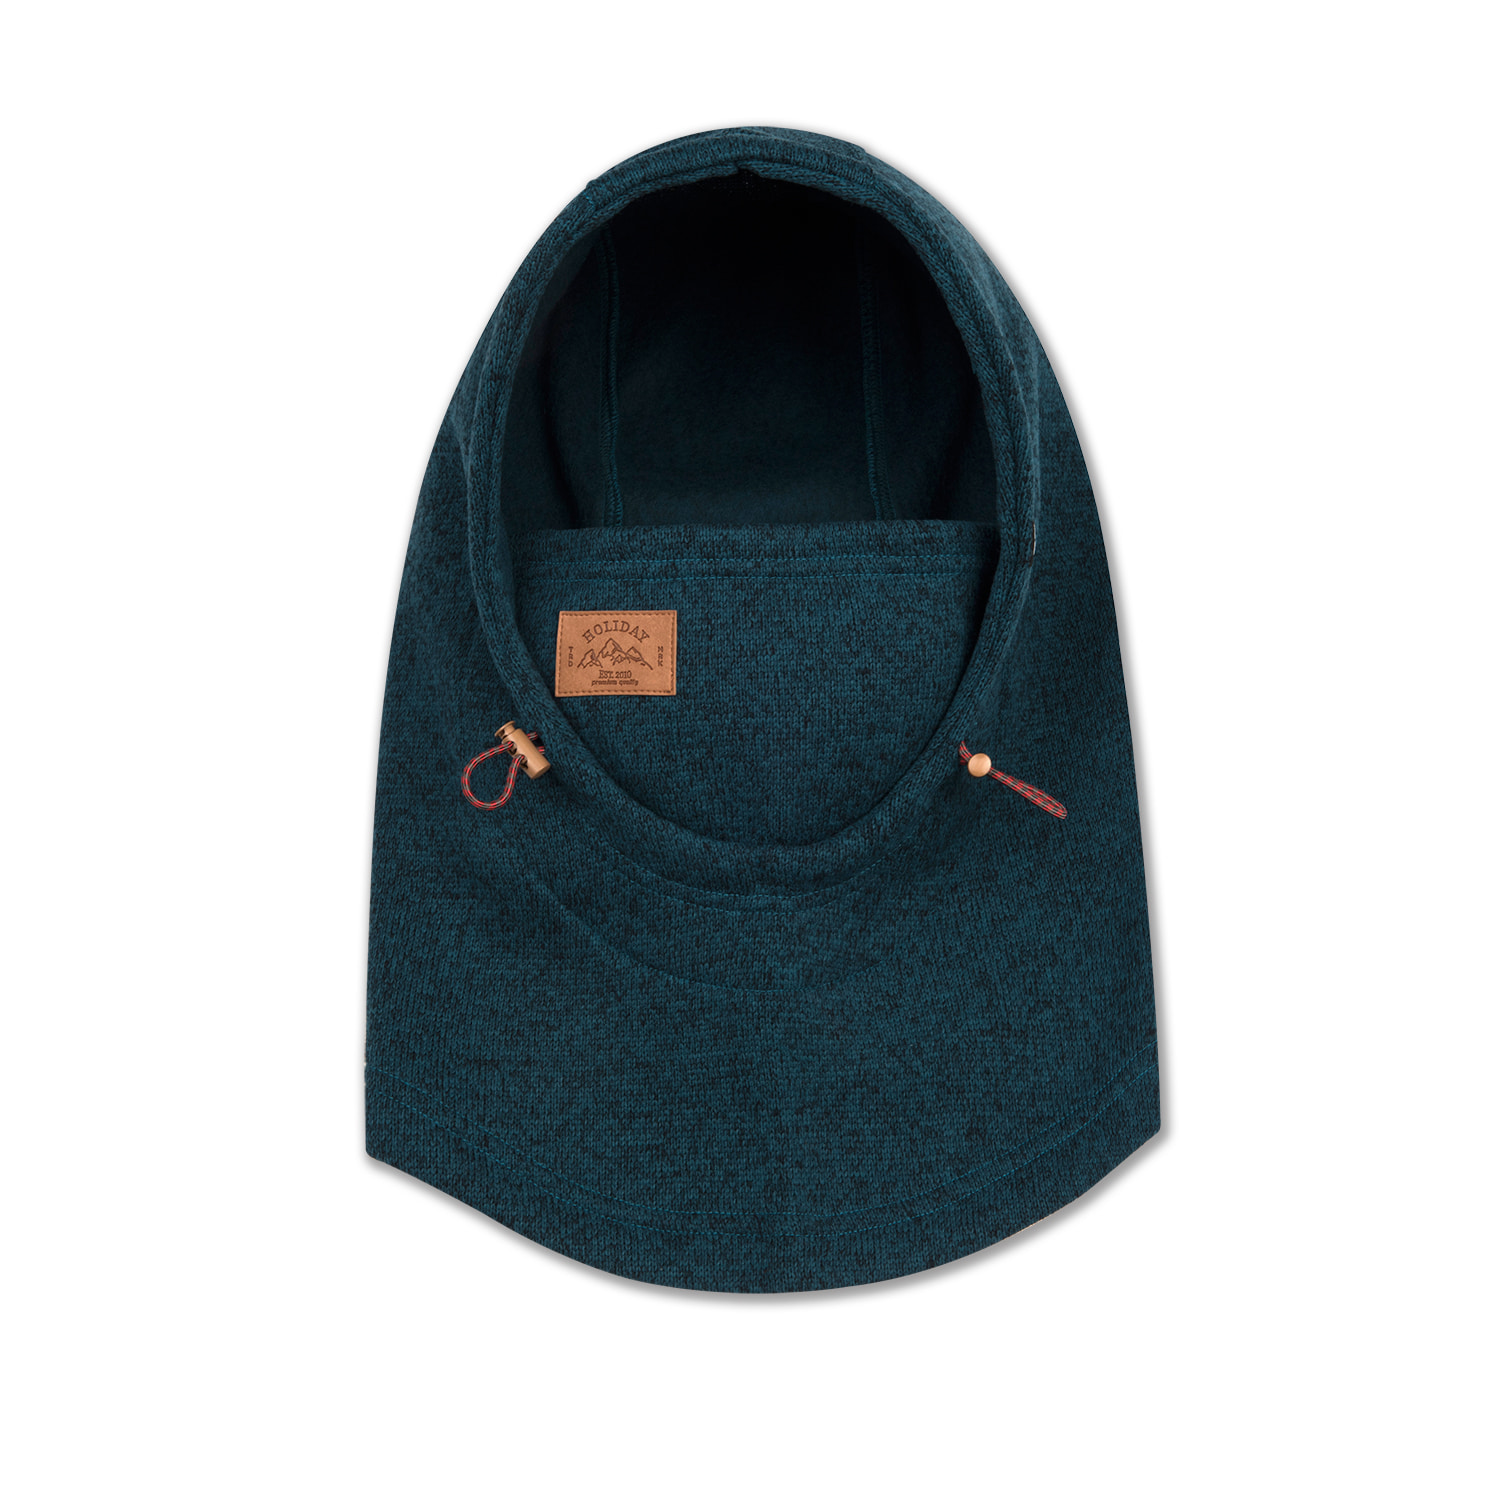 HELMET hood warmer - bluegreenHOLIDAY OUTERWEAR